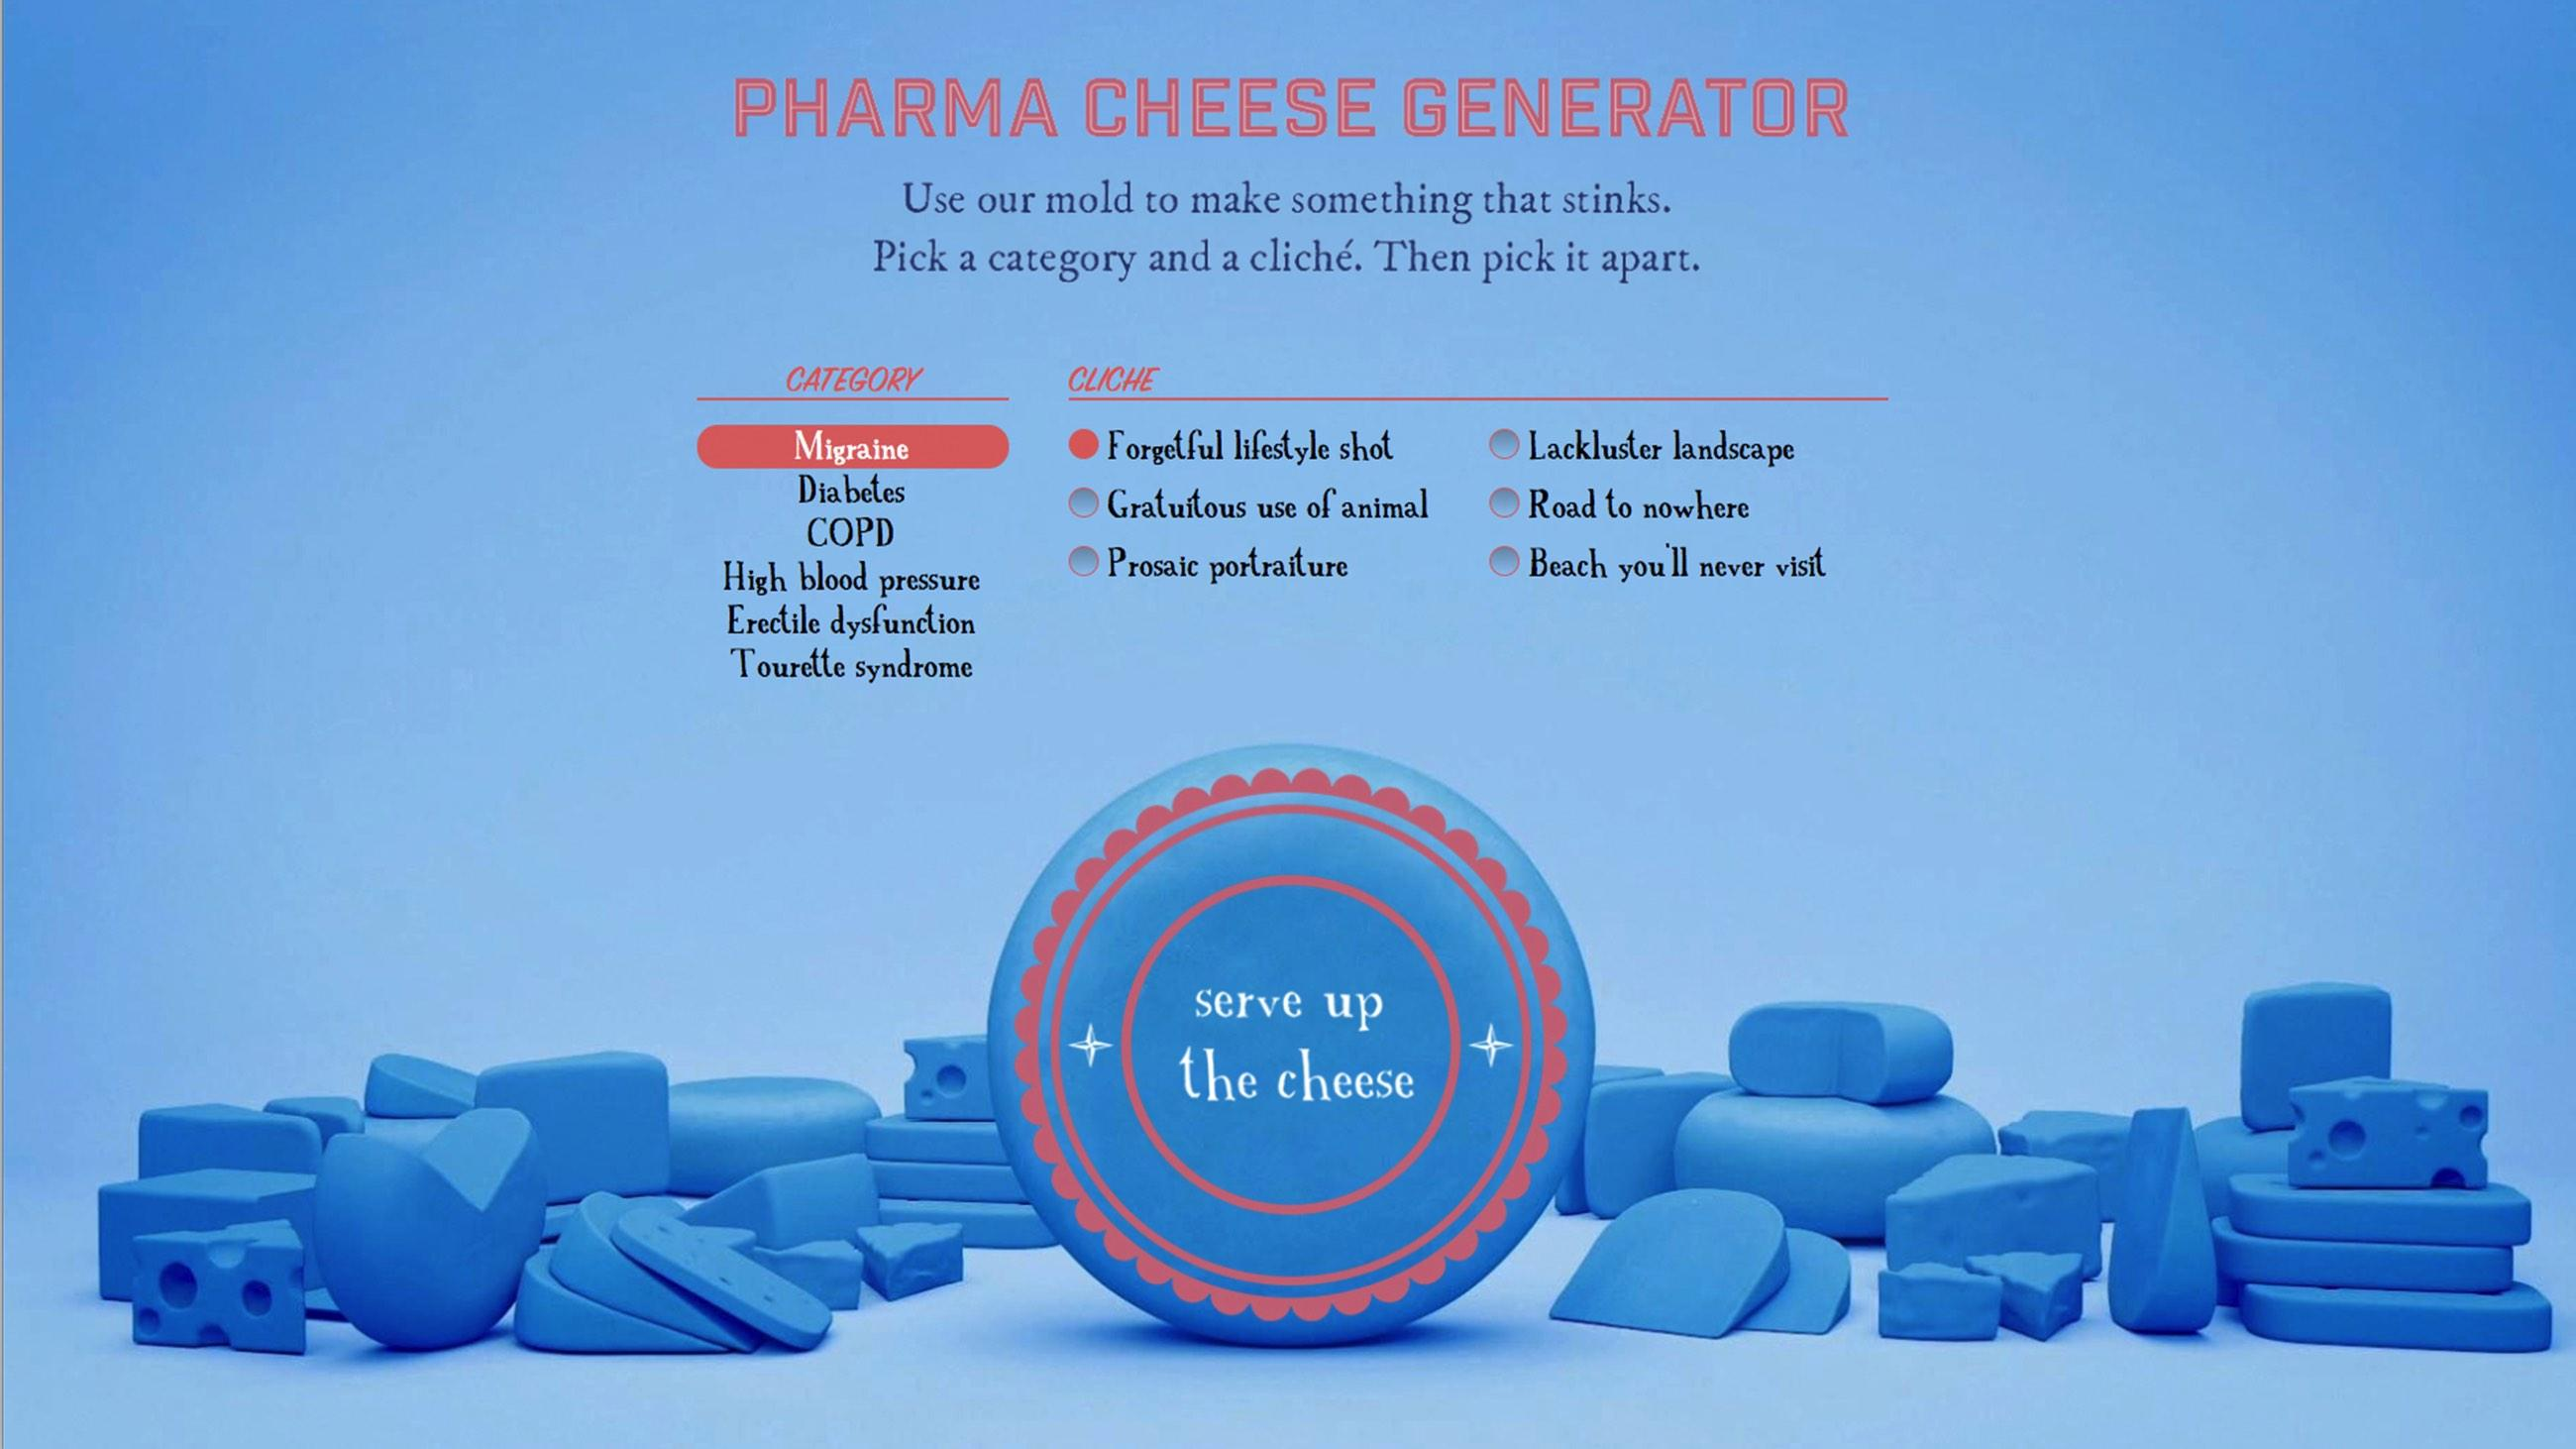 NEON: Pharma Cheese Generator